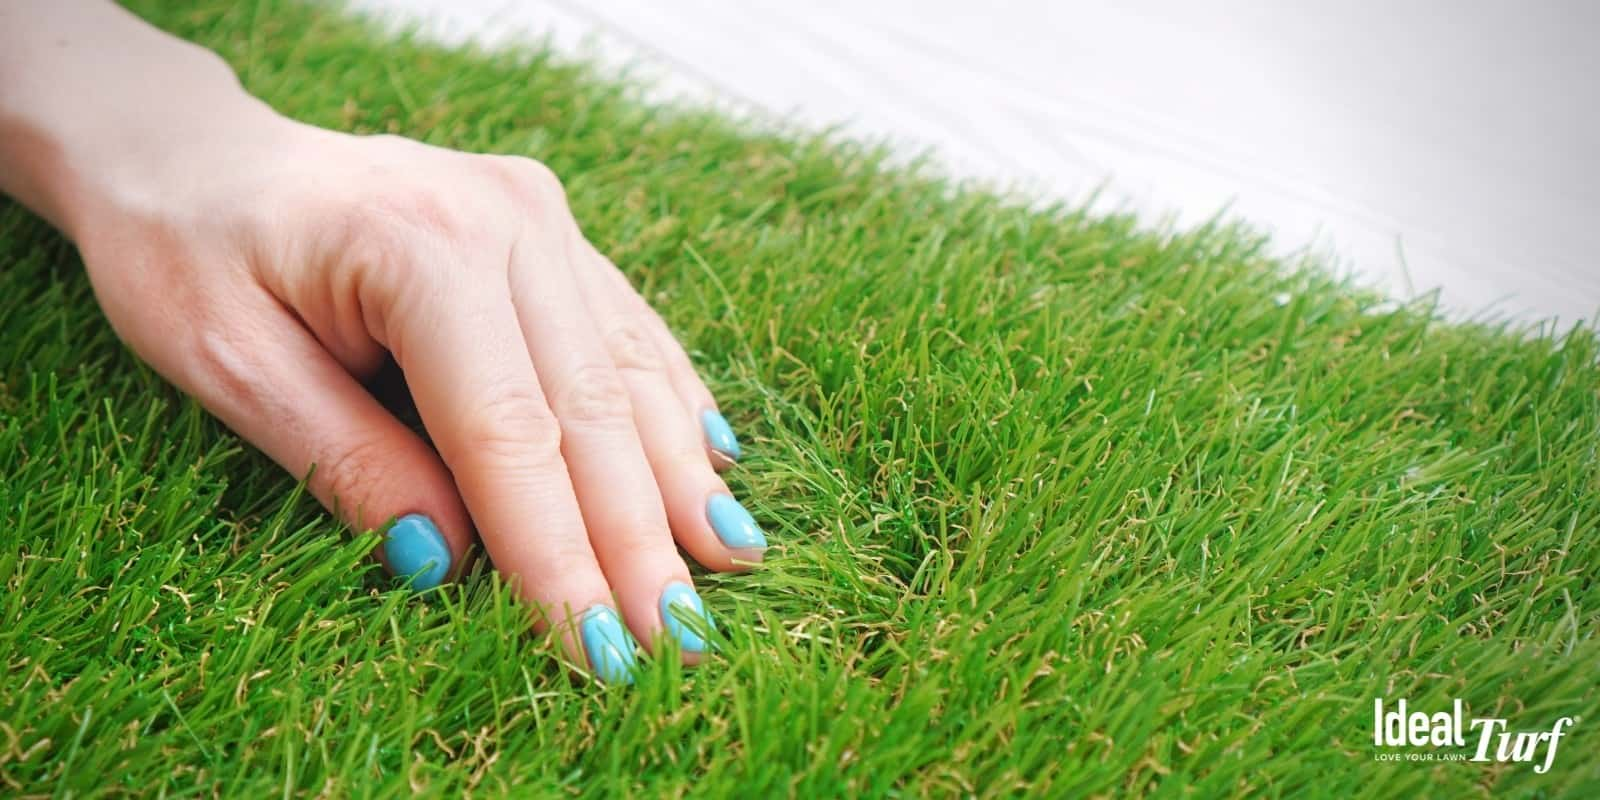 Woman's hand running through artificial grass showing how resilient and springy the fibers are